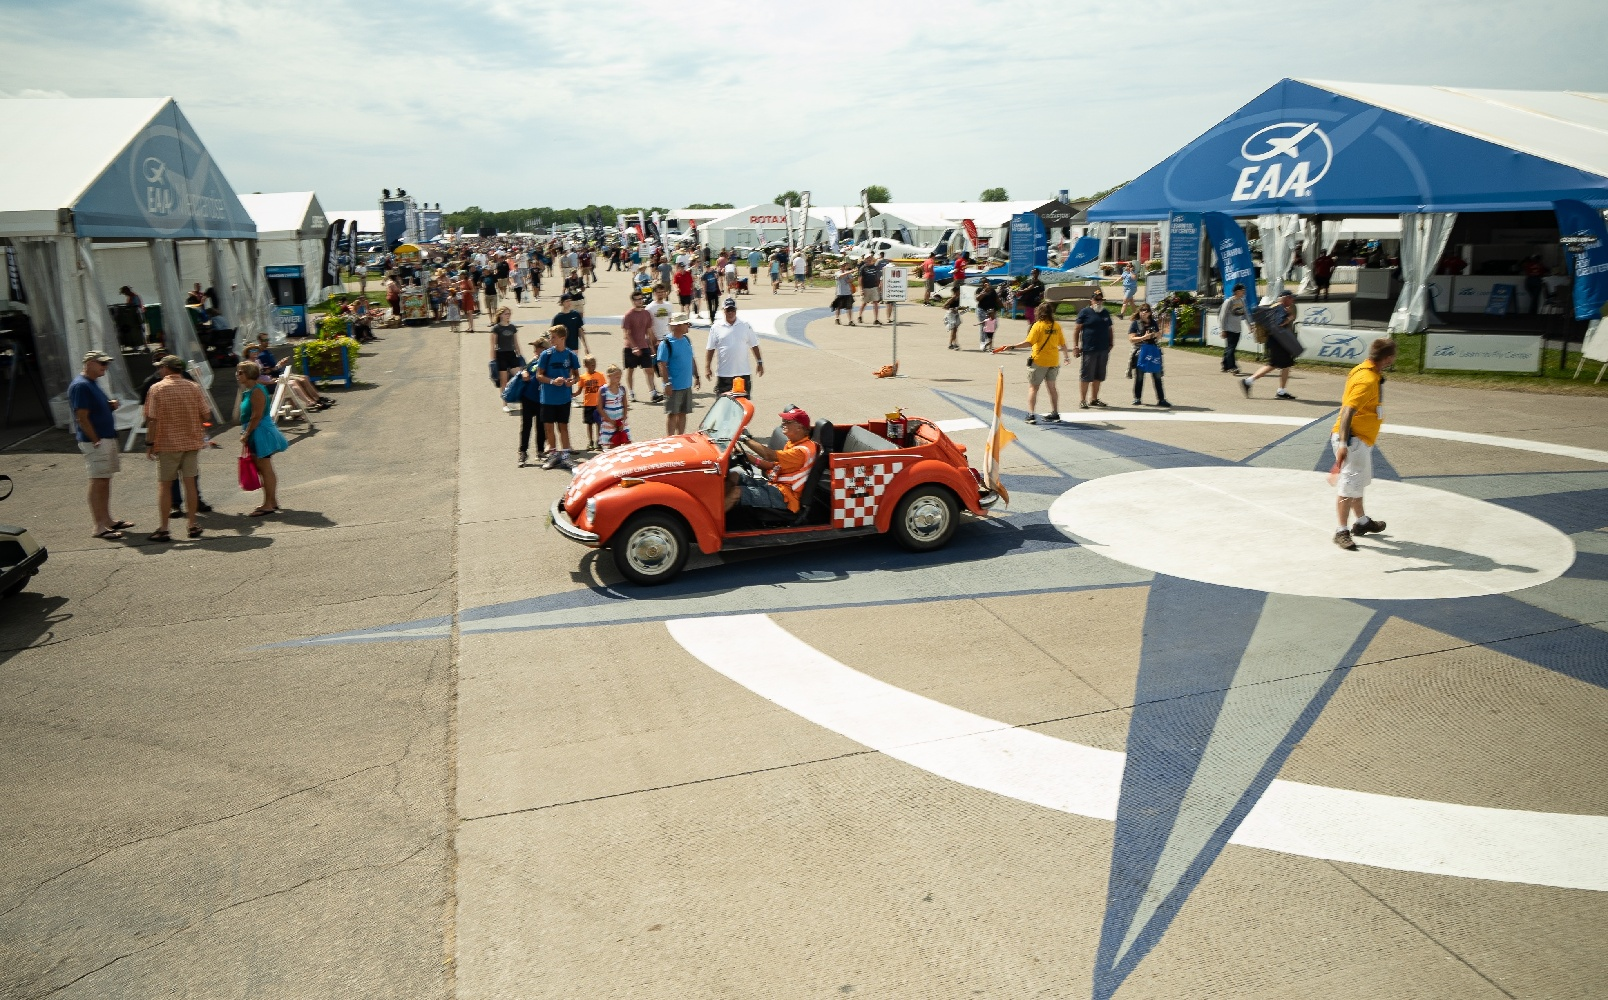 4 Industry Observations From an EAA AirVenture First-Timer